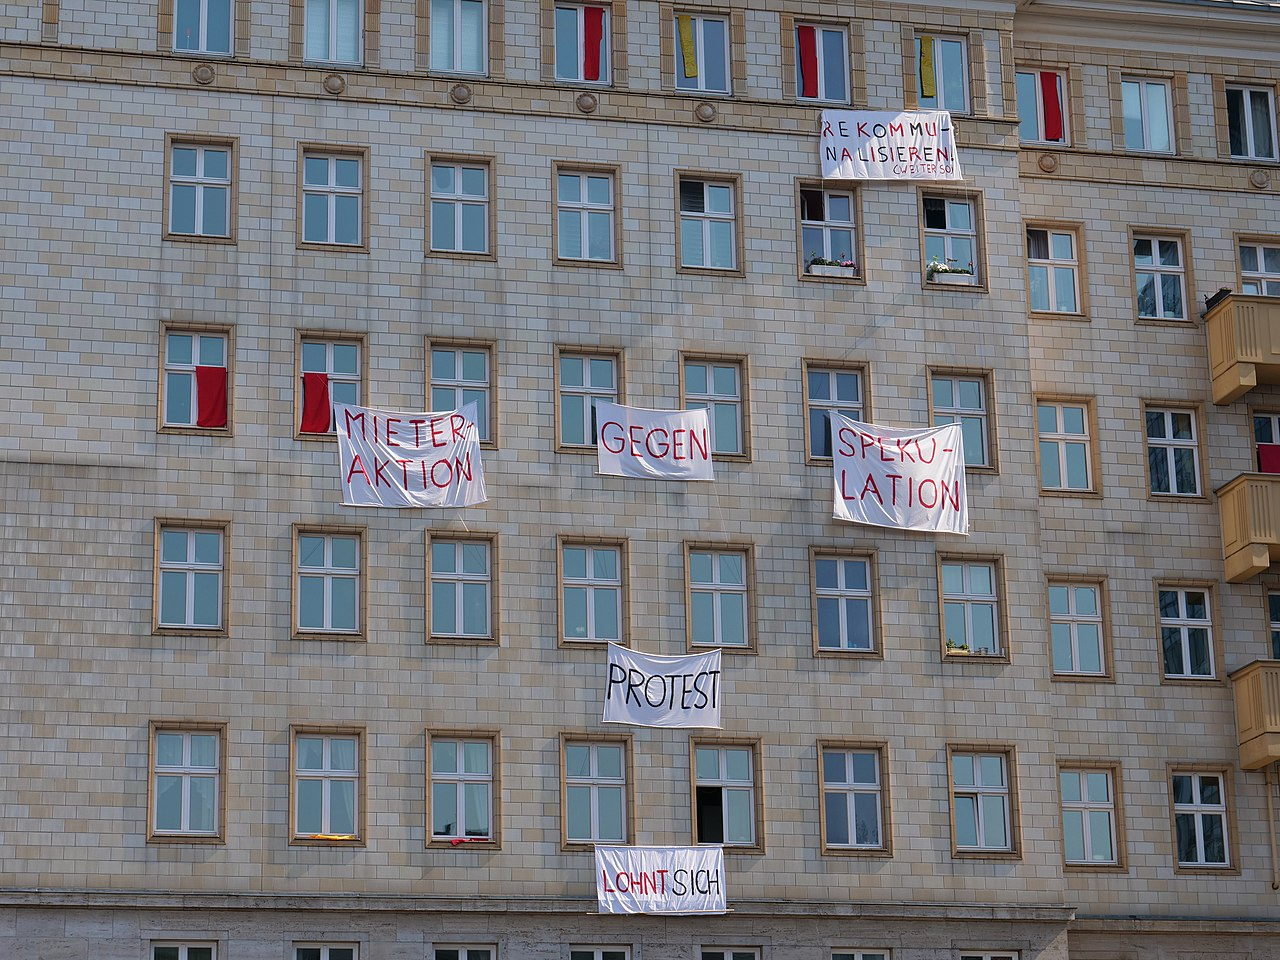 Protest banner at the Karl-Marx-Allee during Mietenwahnsinn demonstration 06-04-2019 10.jpg